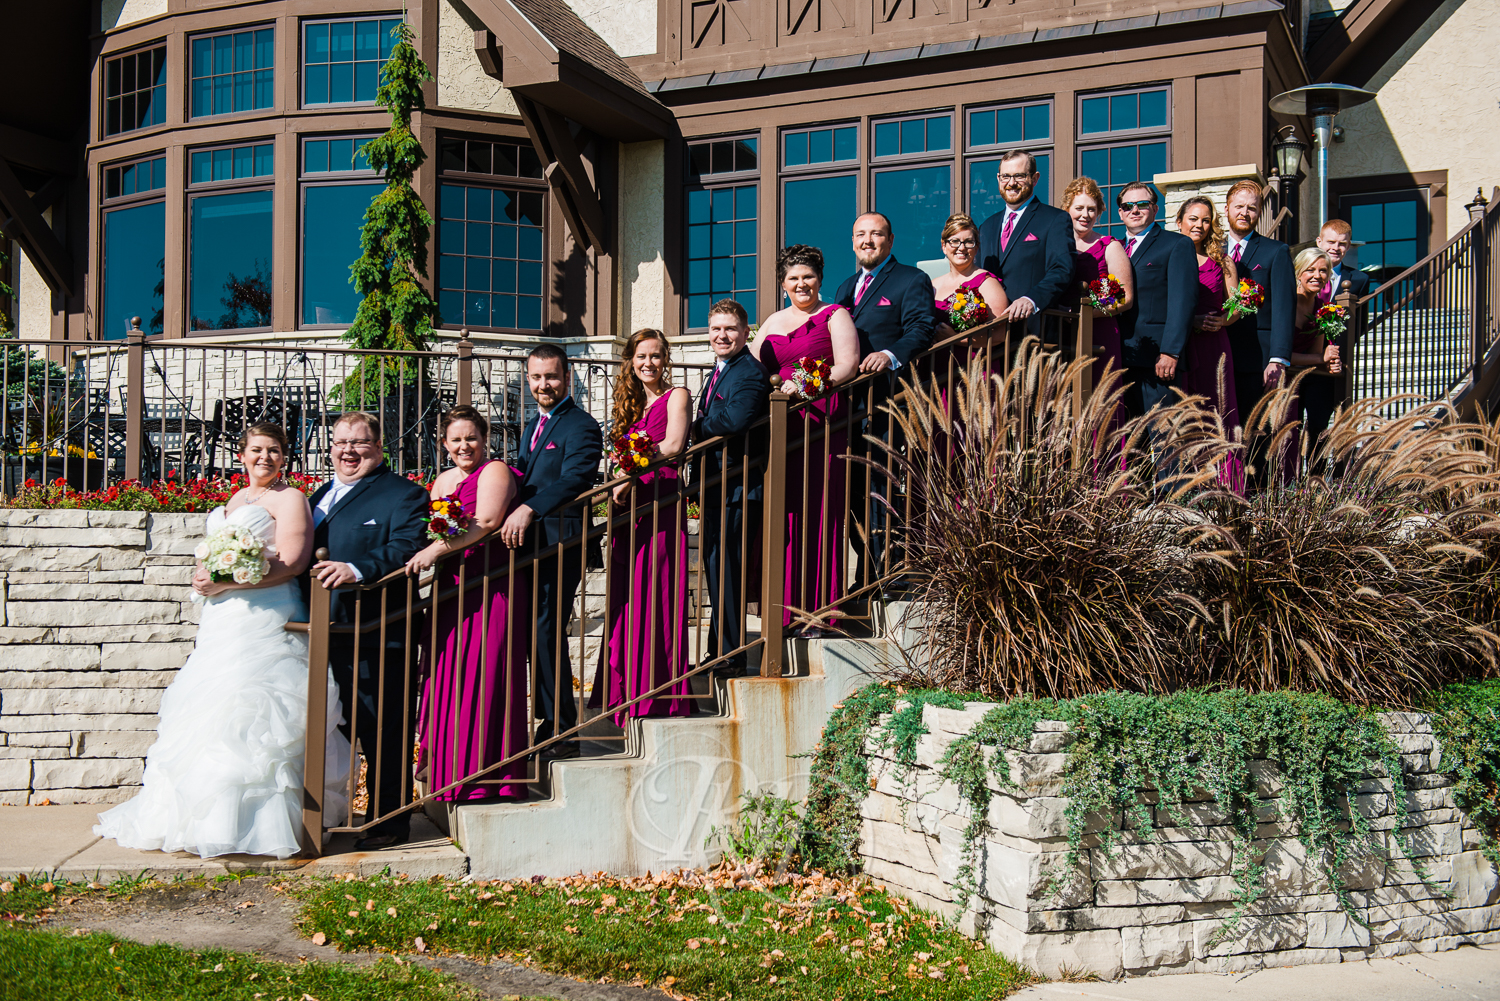 Woodbury Wedding Photography - Amber & Tristan - RKH Images-22